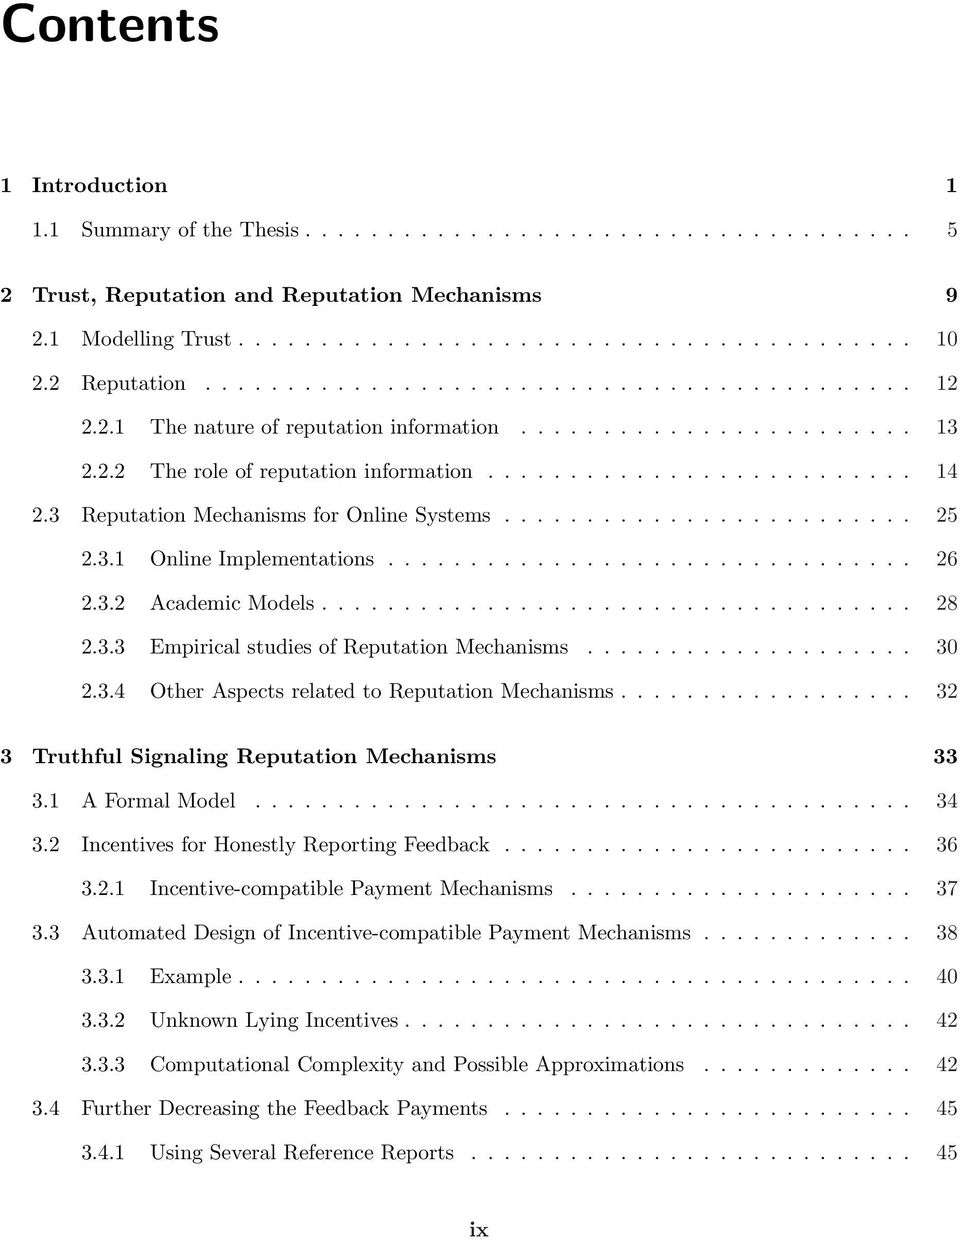 3 Reputation Mechanisms for Online Systems......................... 25 2.3.1 Online Implementations................................ 26 2.3.2 Academic Models.................................... 28 2.3.3 Empirical studies of Reputation Mechanisms.